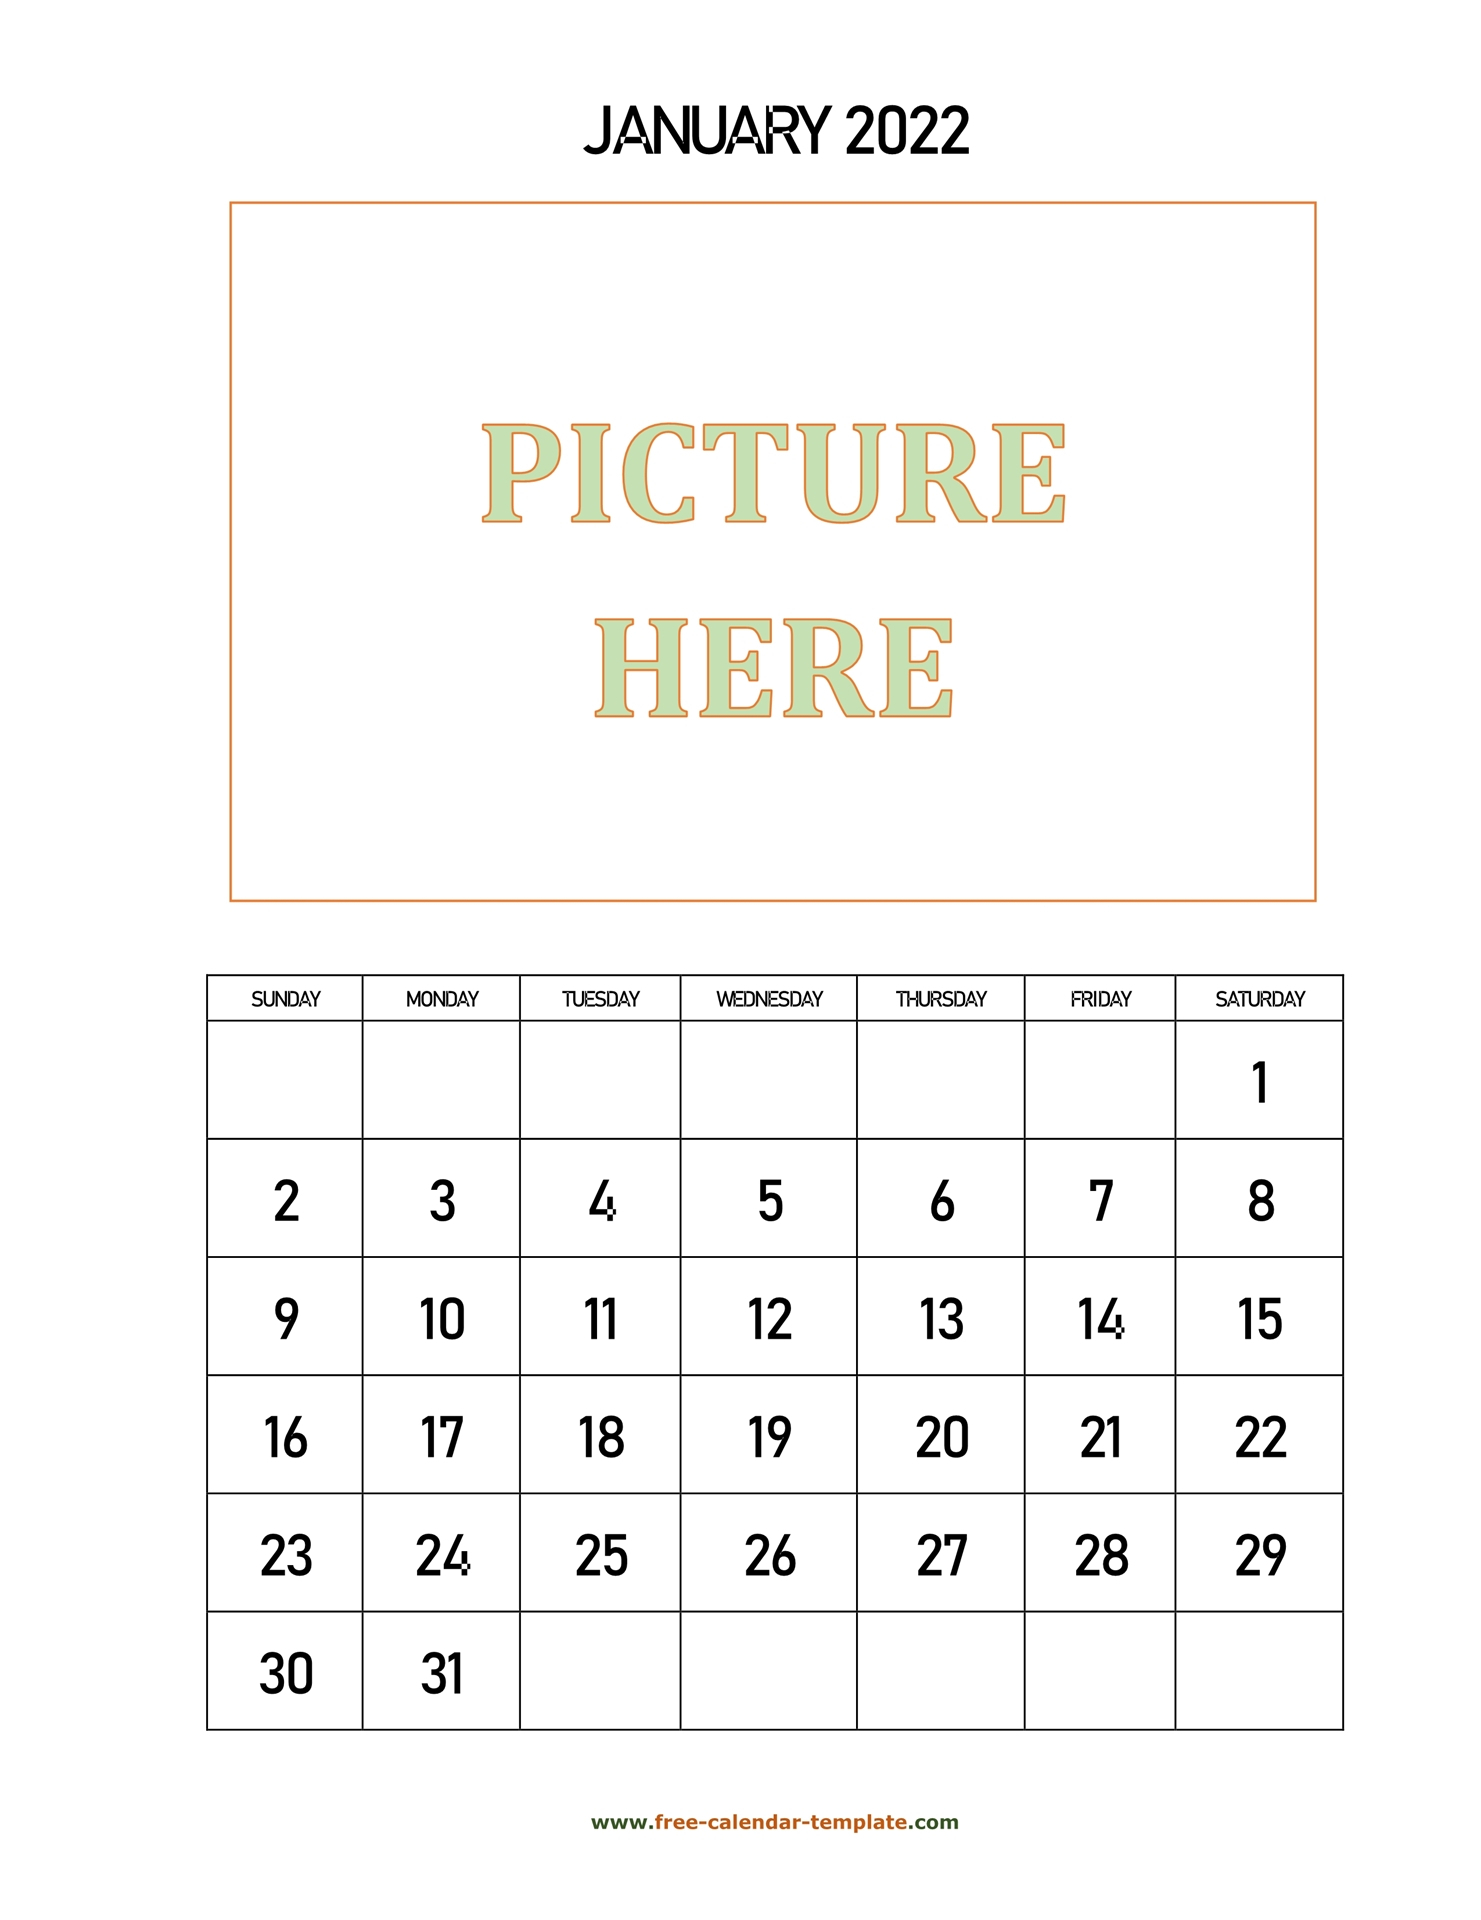 Monthly Printable 2022 Calendar, Space For Add Picture